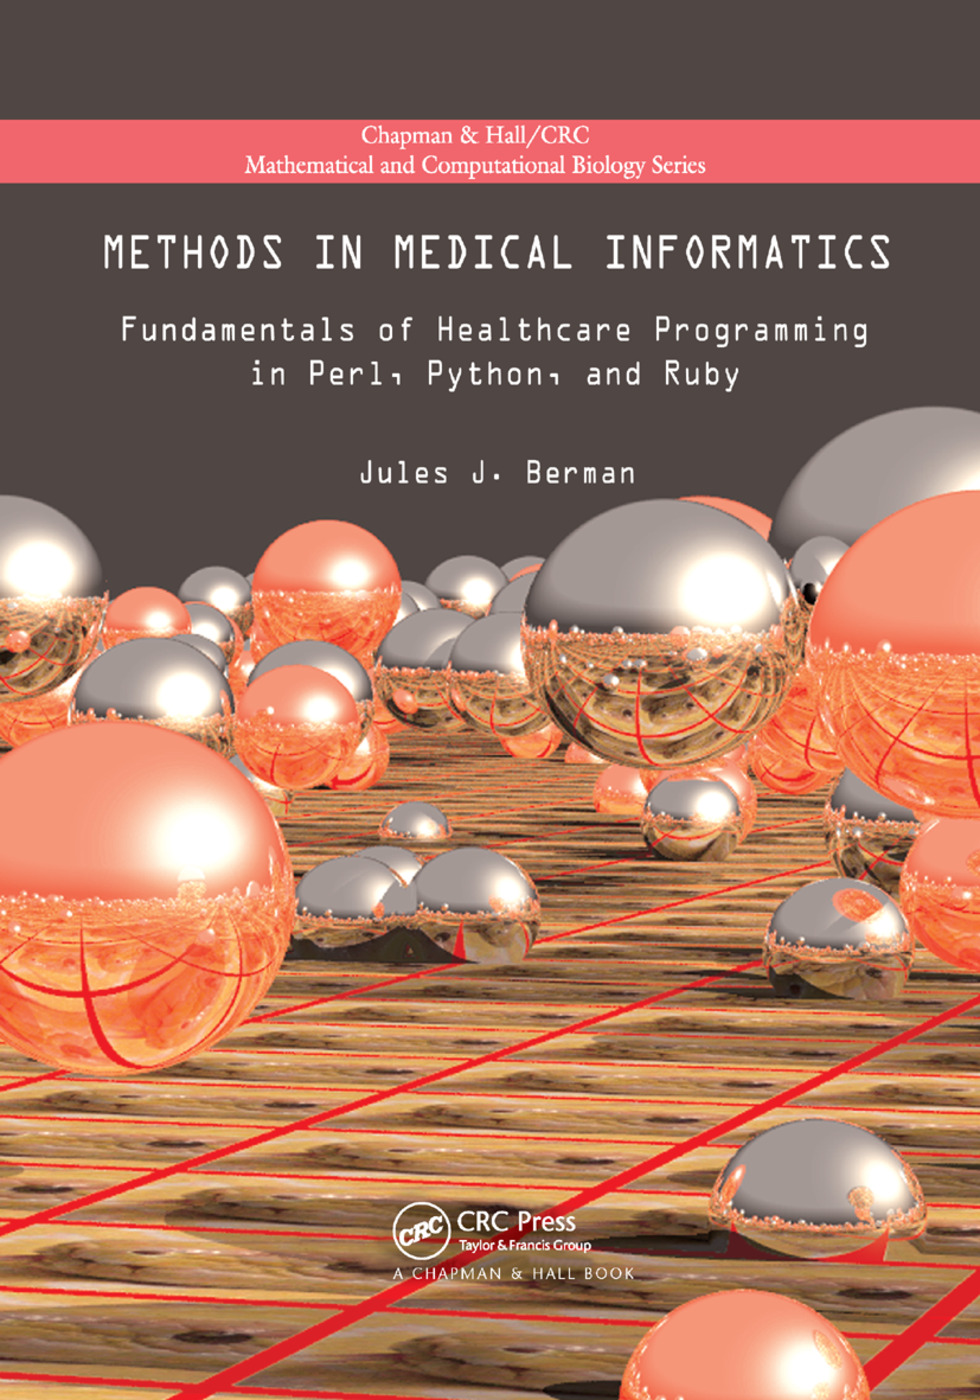 Methods in Medical Informatics: Fundamentals of Healthcare Programming in Perl, Python, and Ruby book cover